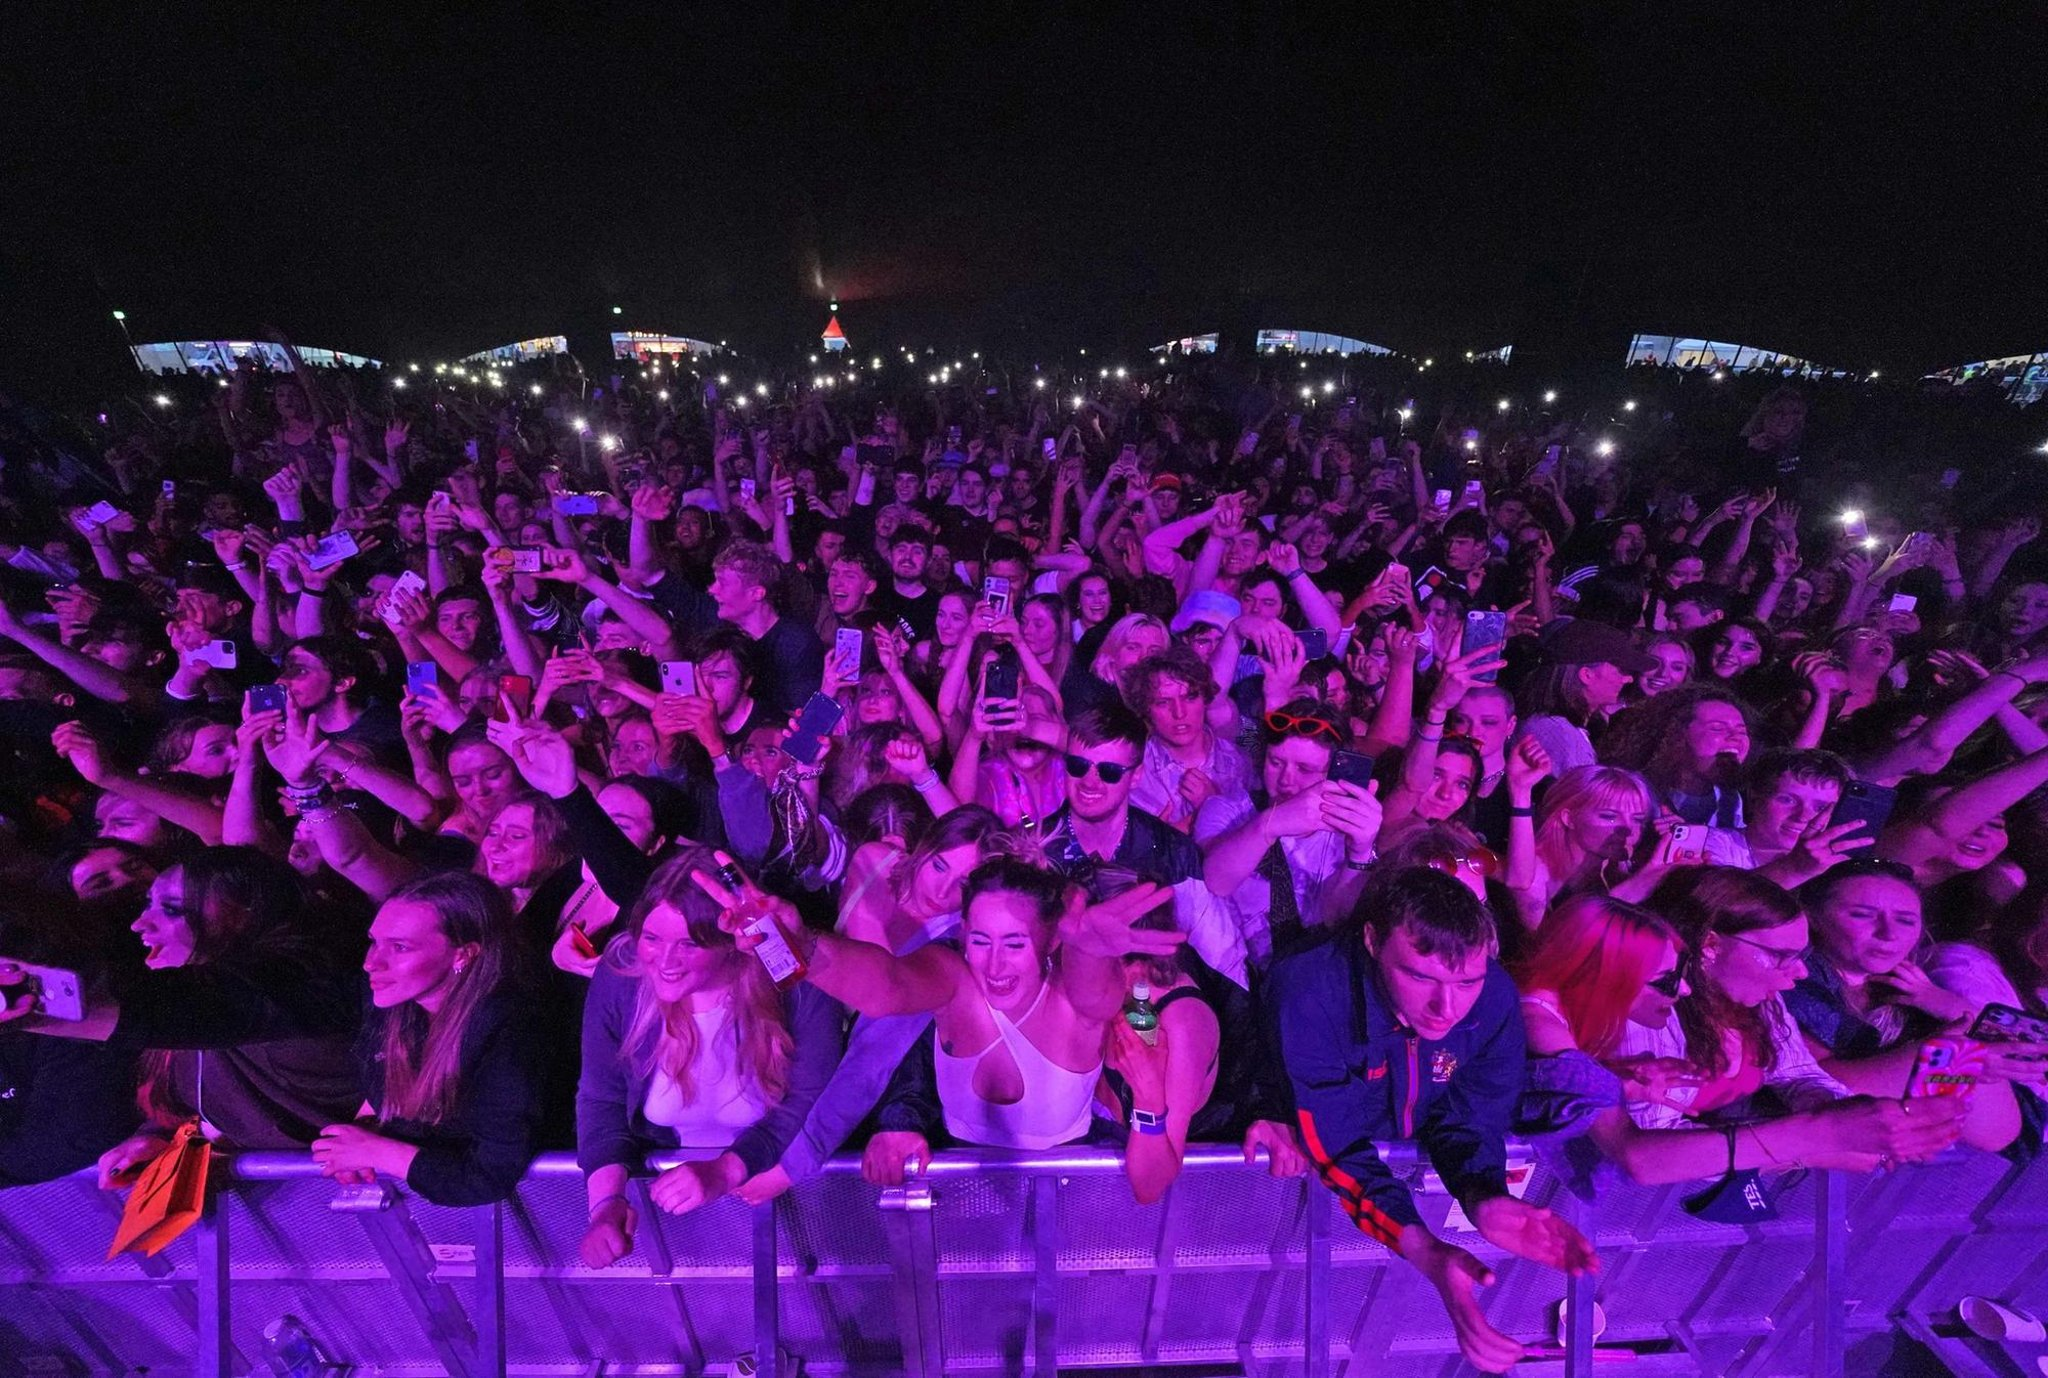 Nicola Sturgeon: Test events in England could pave way for summerfestival crowds to return in Scotland